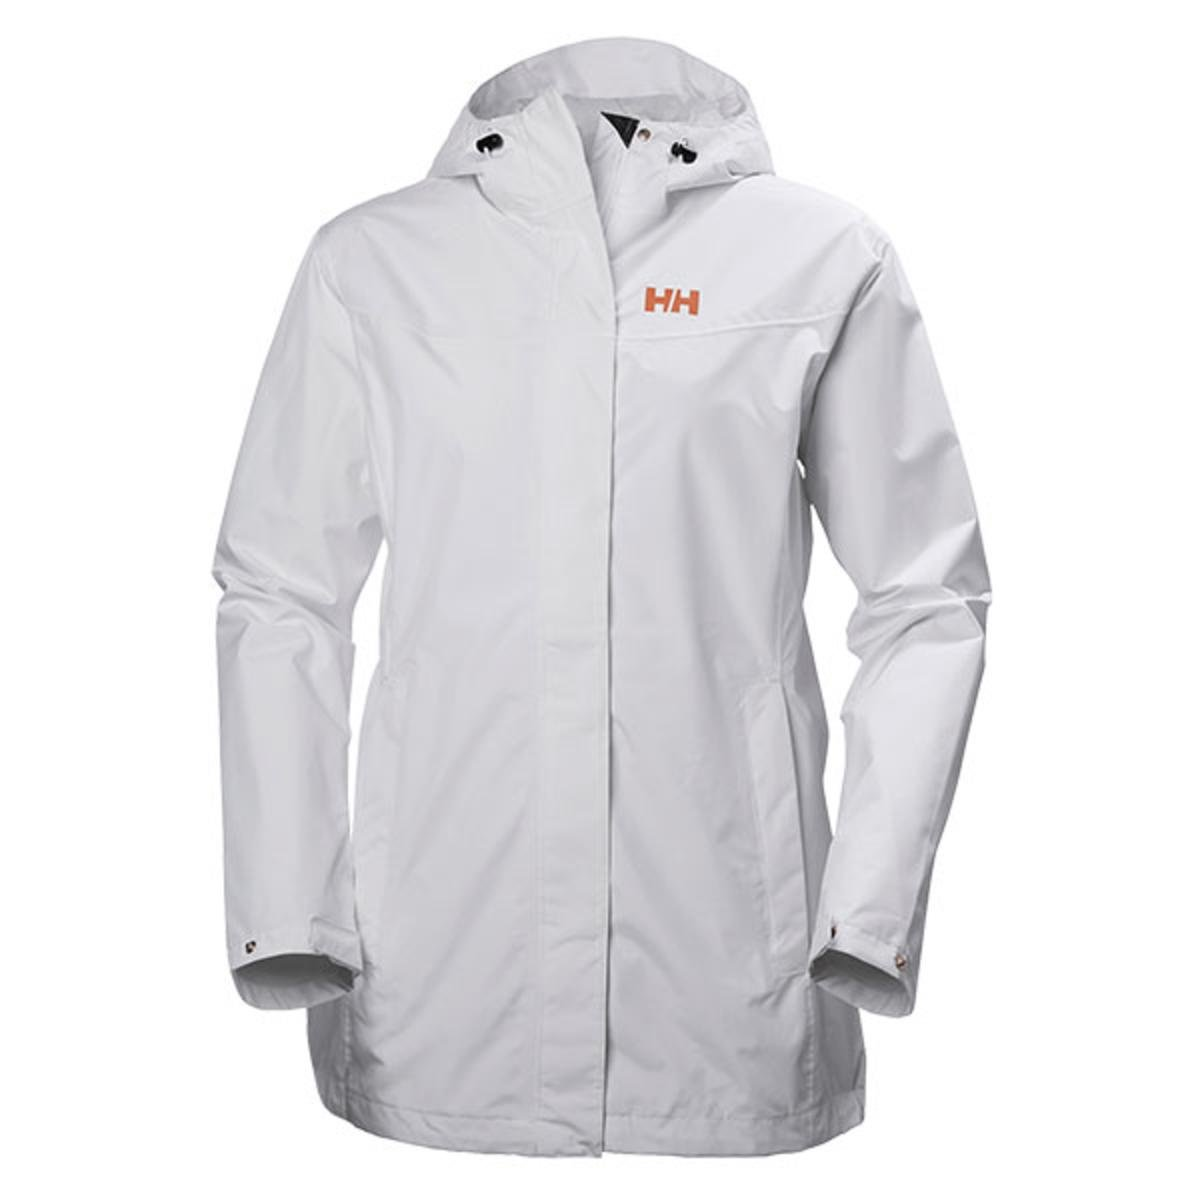 sc 1 st  The Warming Store & Helly Hansen Womenu0027s Lynwood Jacket - The Warming Store